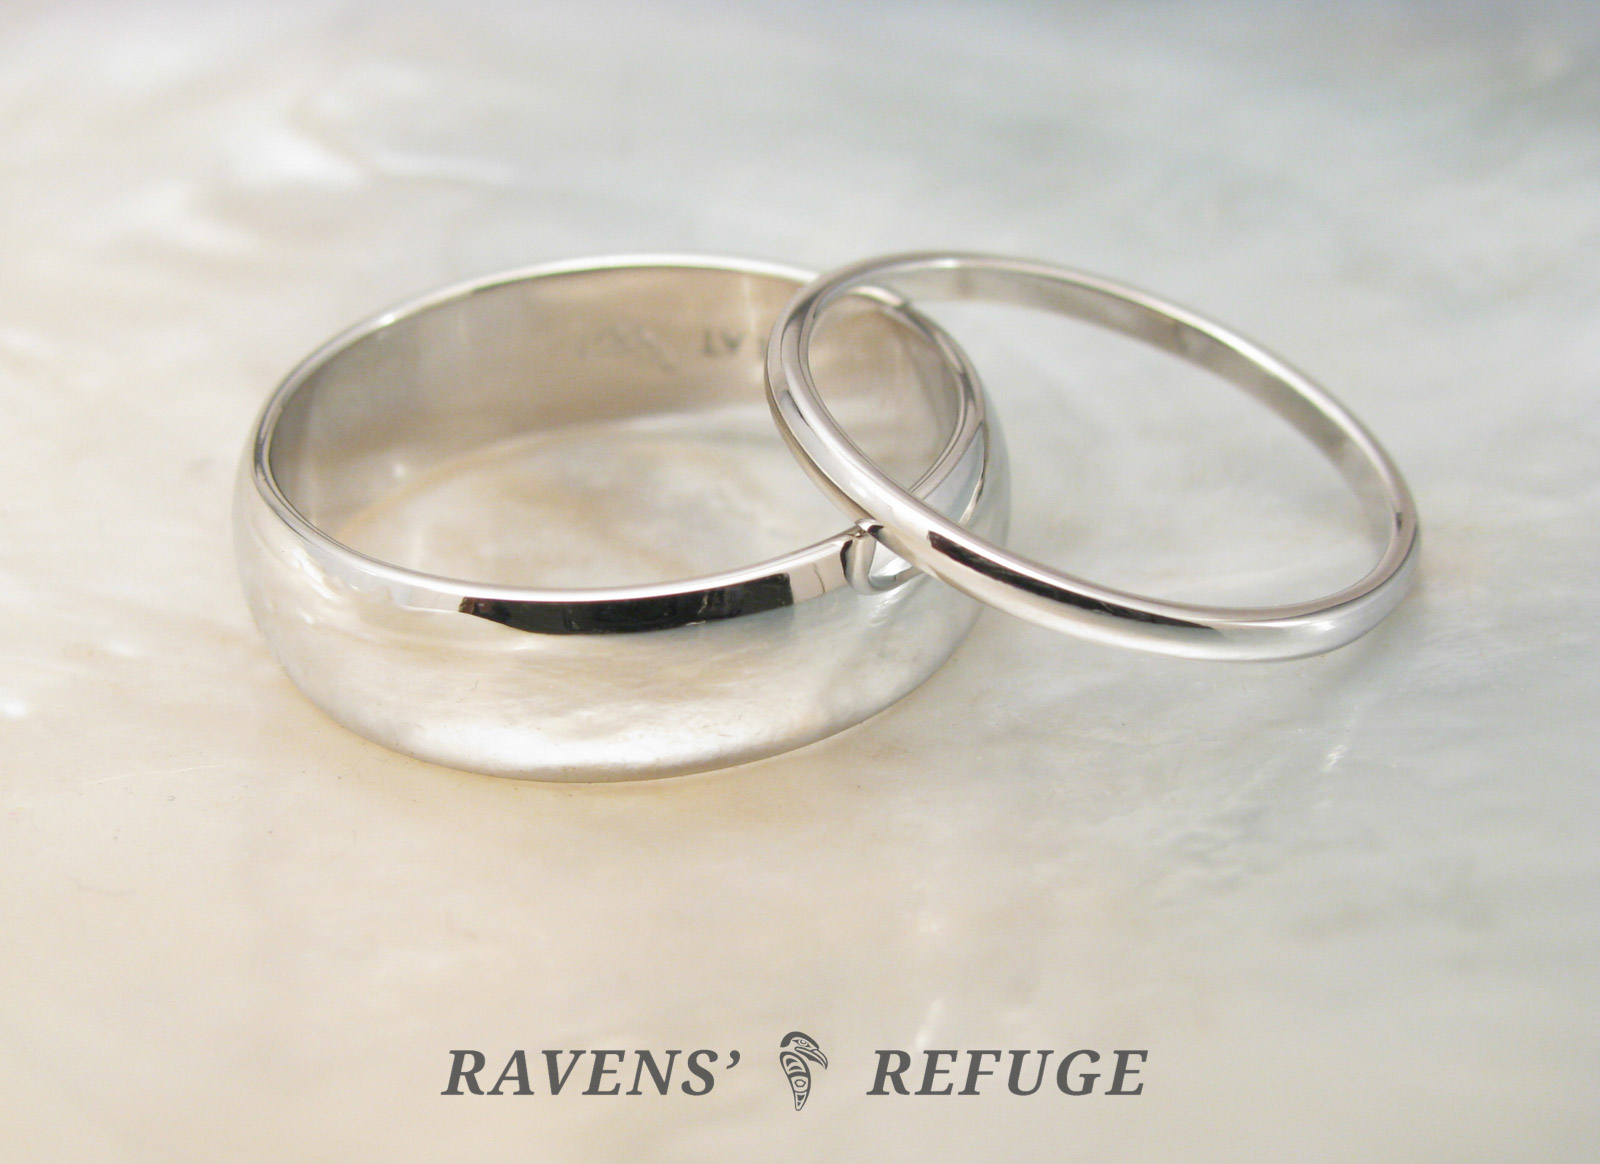 This is a graphic of classic platinum wedding band set, hand forged